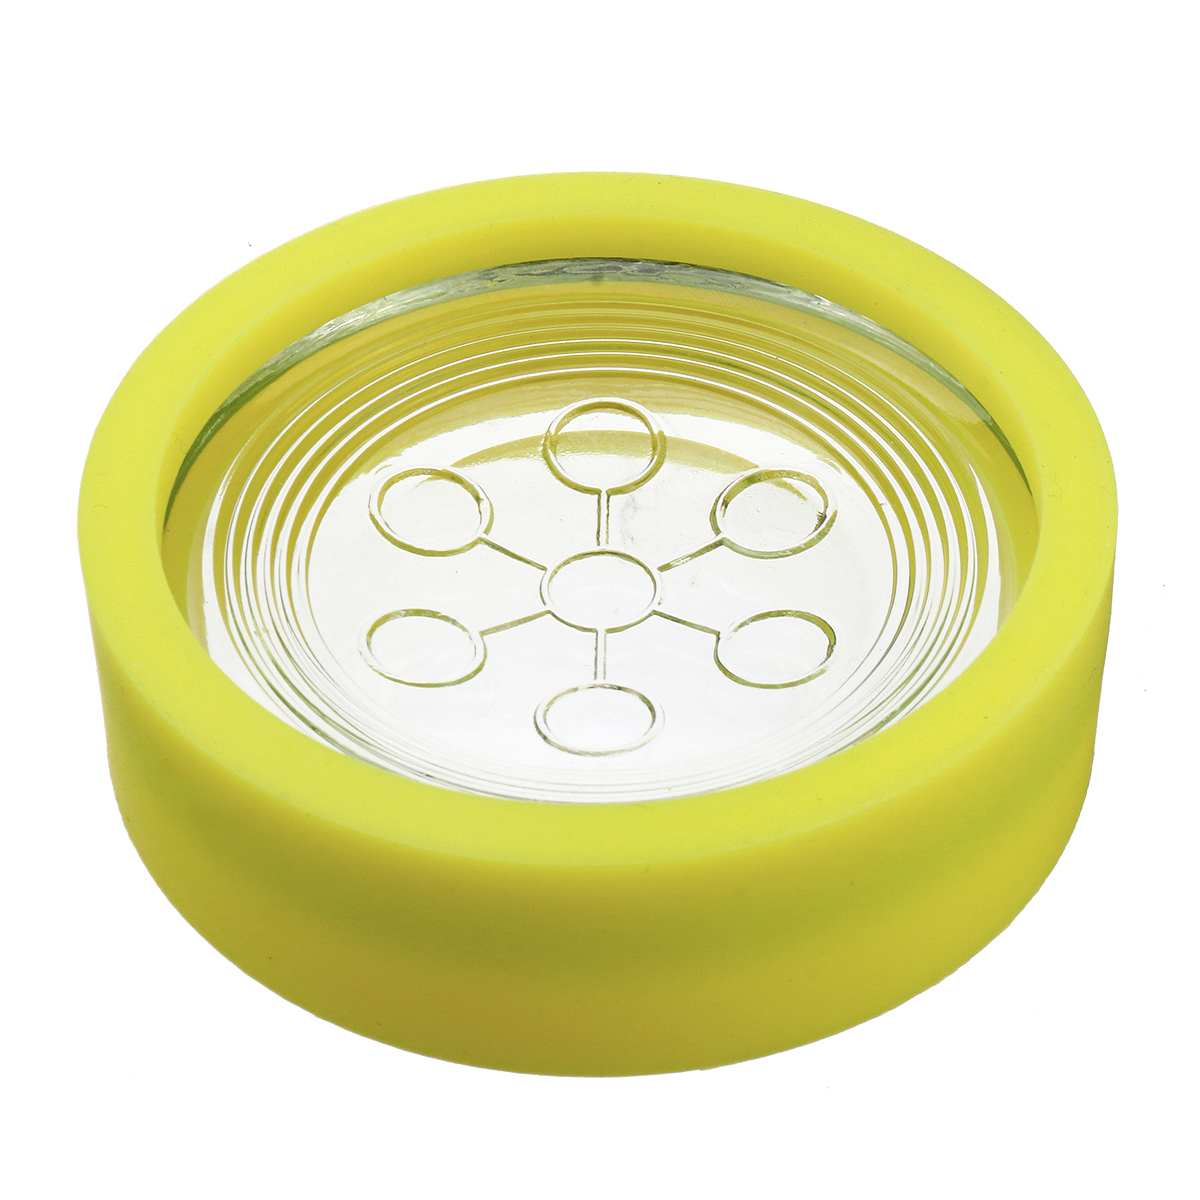 Parts & Accessories Power Ring Spacer Supplement The Vital Energy And Nourish Yin